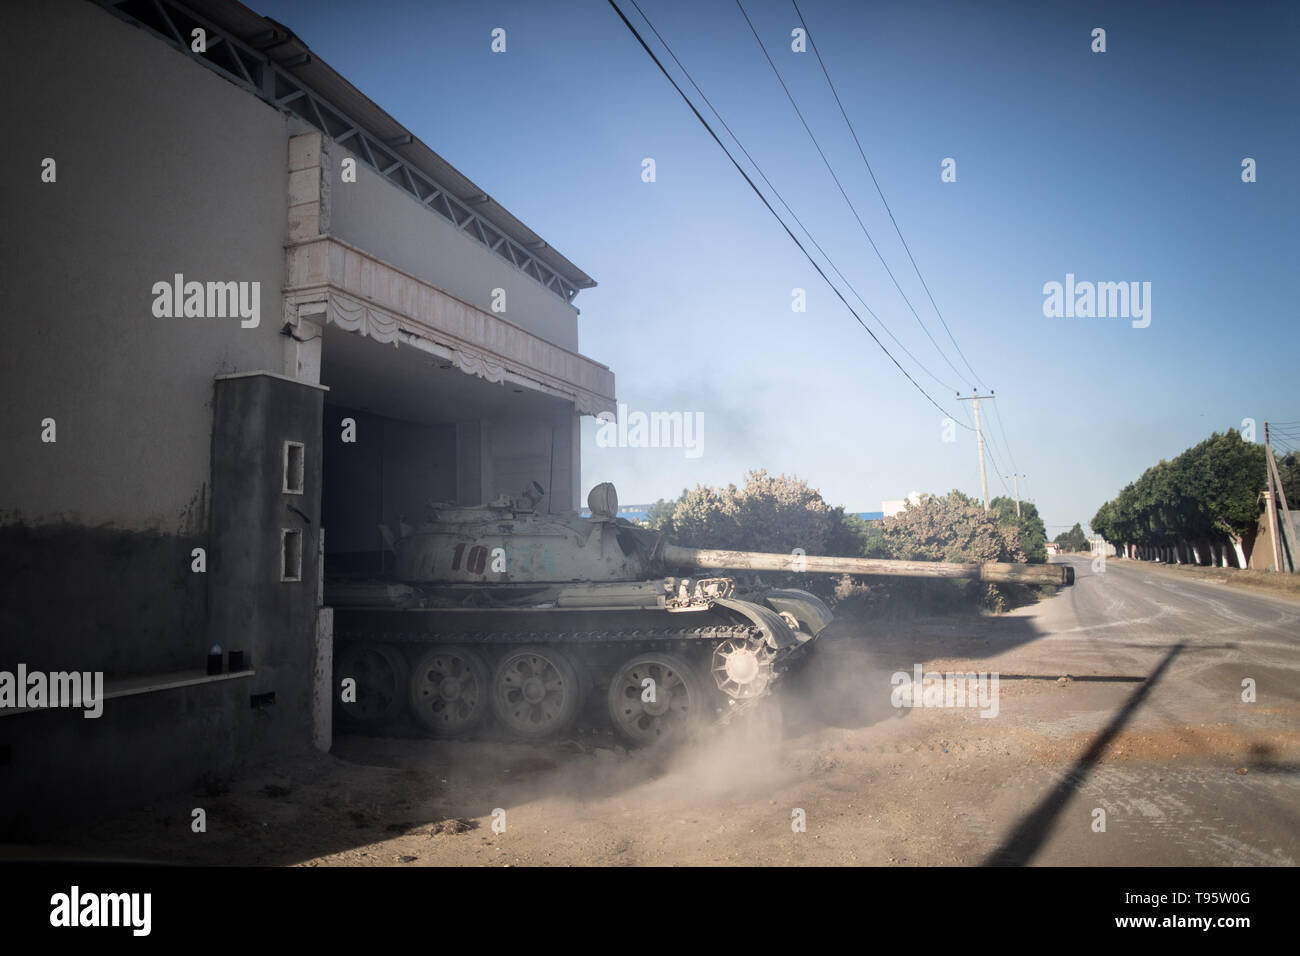 Tripoli, Libya. 16th May, 2019. A tank of UN-backed government forces is seen in Al-Sawani frontline near Tripoli airport in Tripoli, Libya, on May 16, 2019. At least six civilians were reported killed and five more injured in an apparent airstrike in populated areas of the Libyan capital of Tripoli, Stephane Dujarric, spokesman for UN Secretary-General Antonio Guterres, said on Thursday. Credit: Amru Salahuddien/Xinhua/Alamy Live News - Stock Image